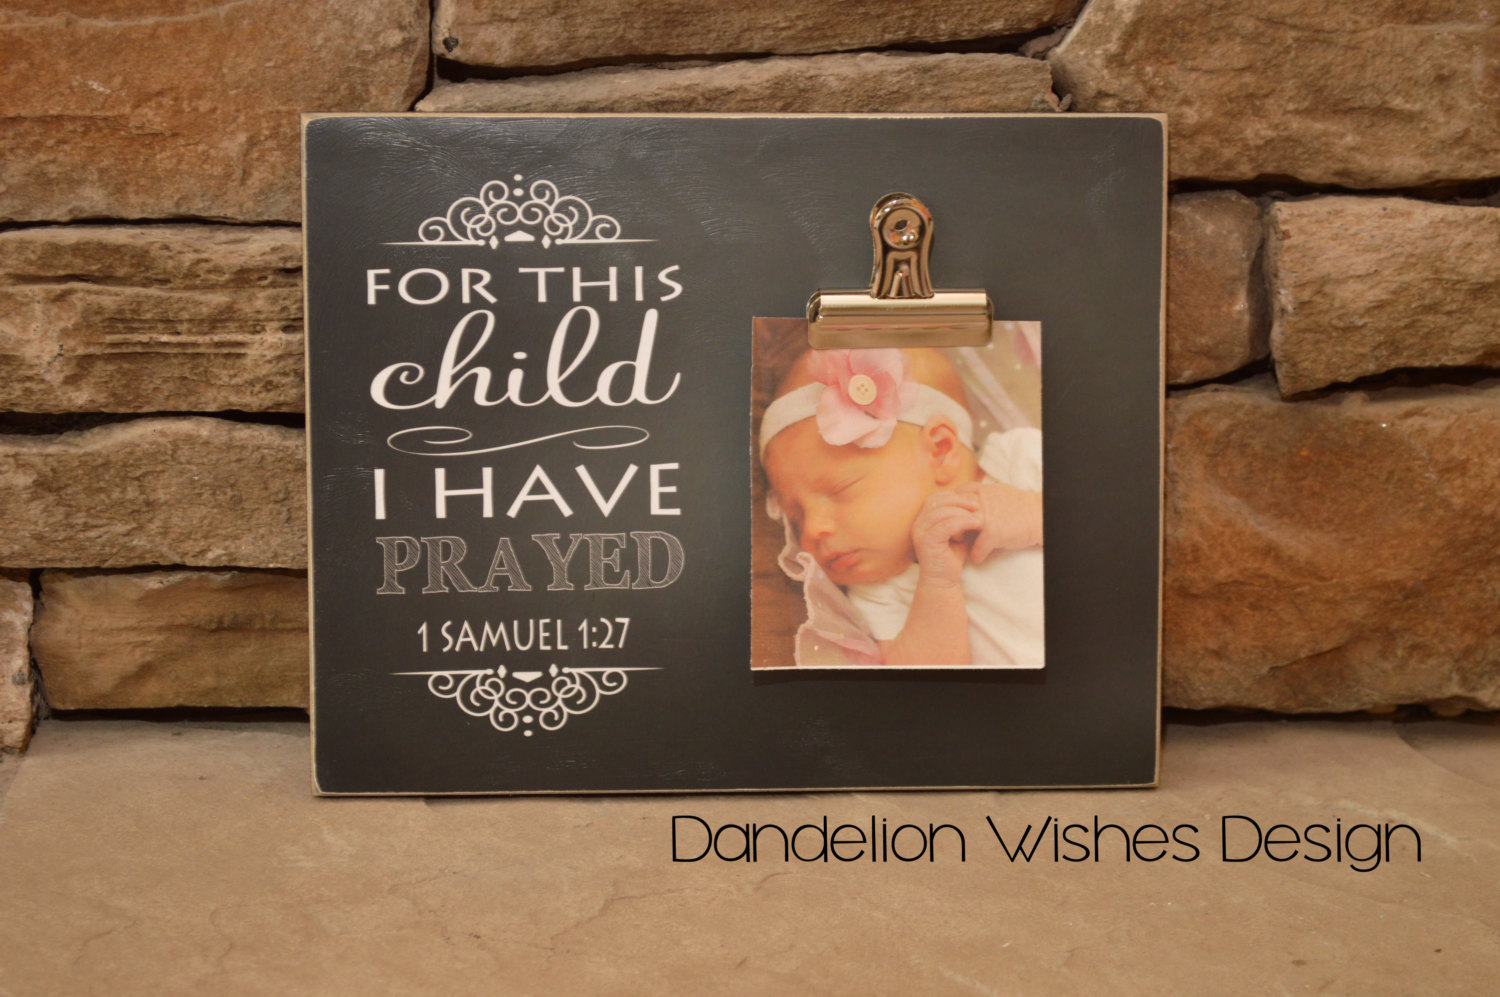 For This Child I Have Prayed 8x10 Dandelion Wishes Design